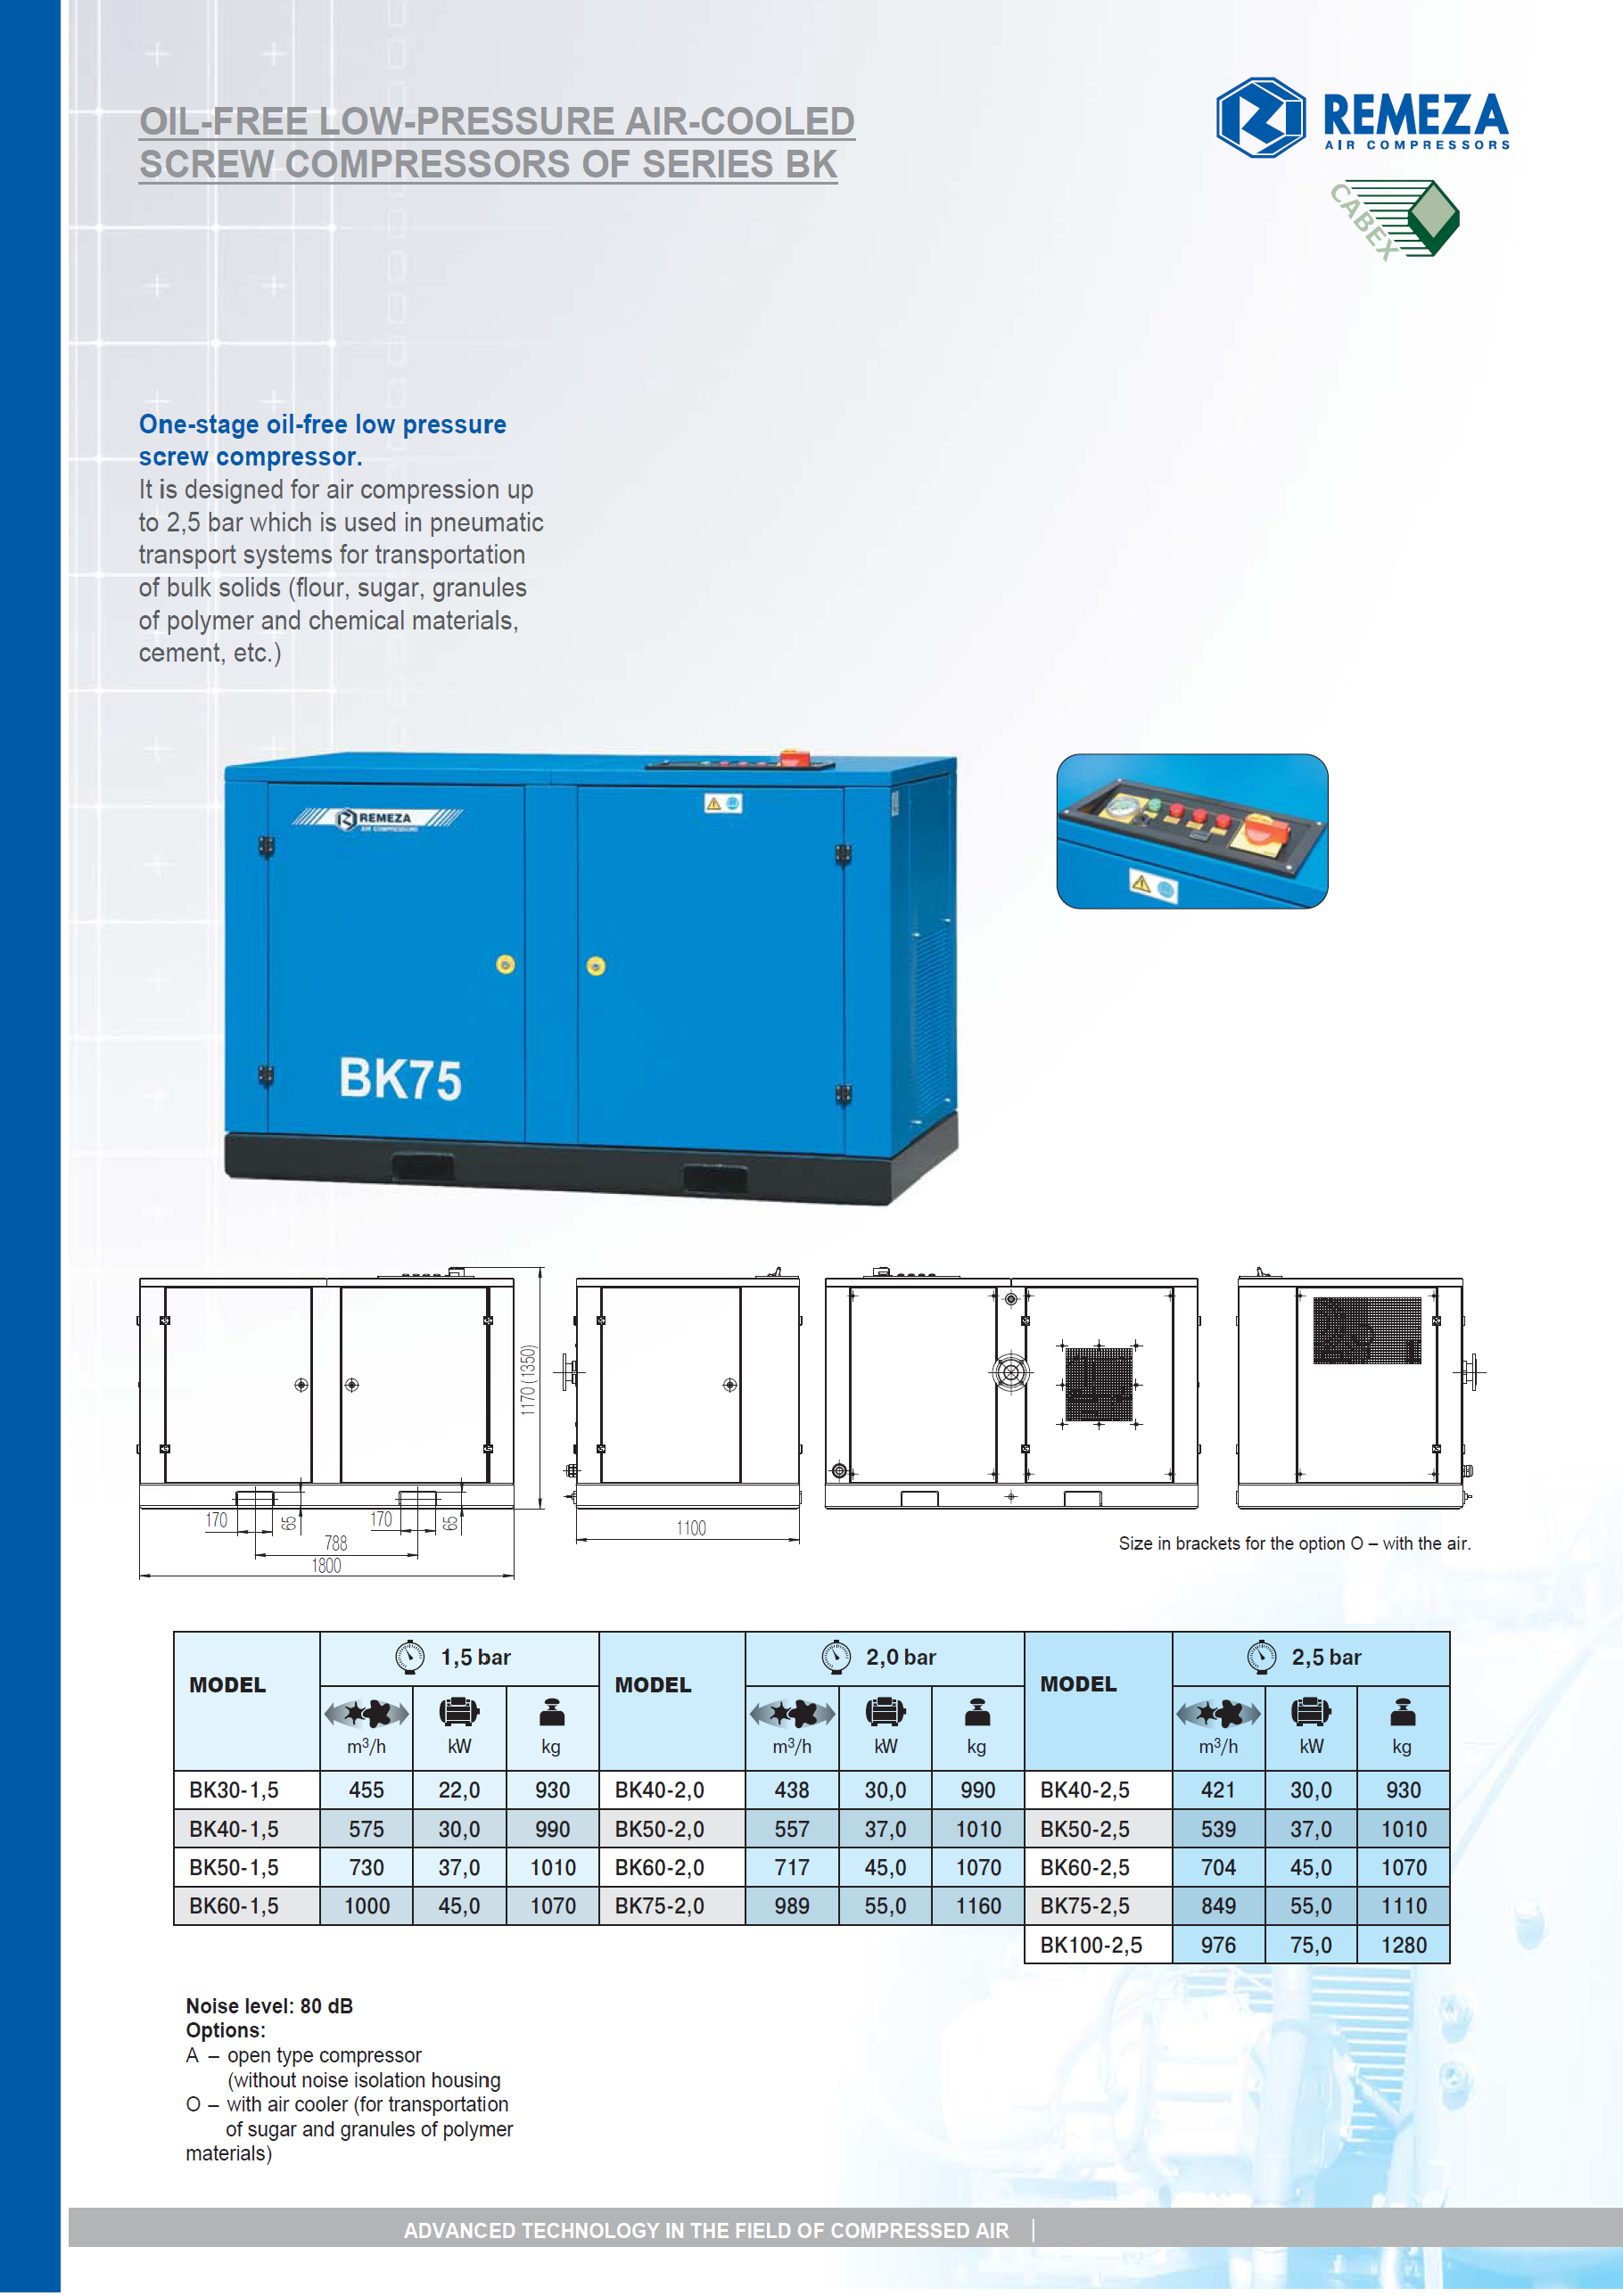 10_oil-free-low-pressure-air-cooled-screw-compressors-remeza-series_pag_1